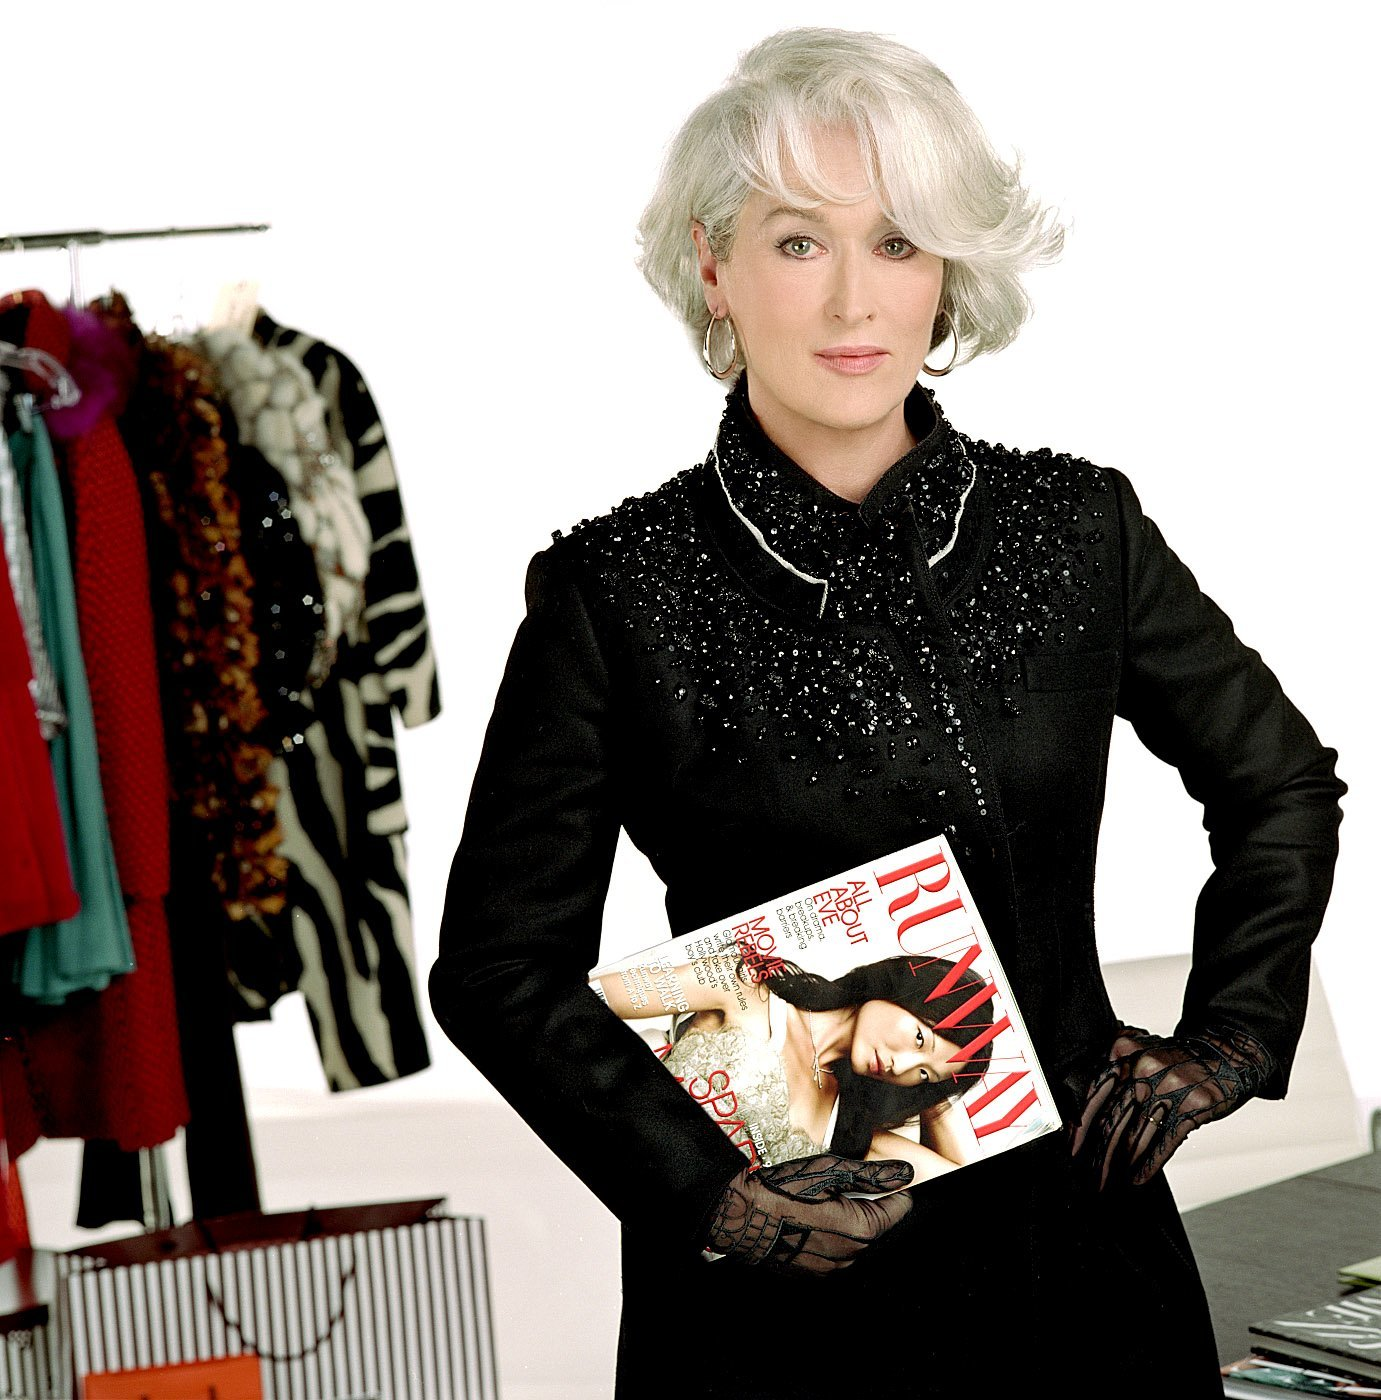 No. 1: She's Miranda freaking Priestly